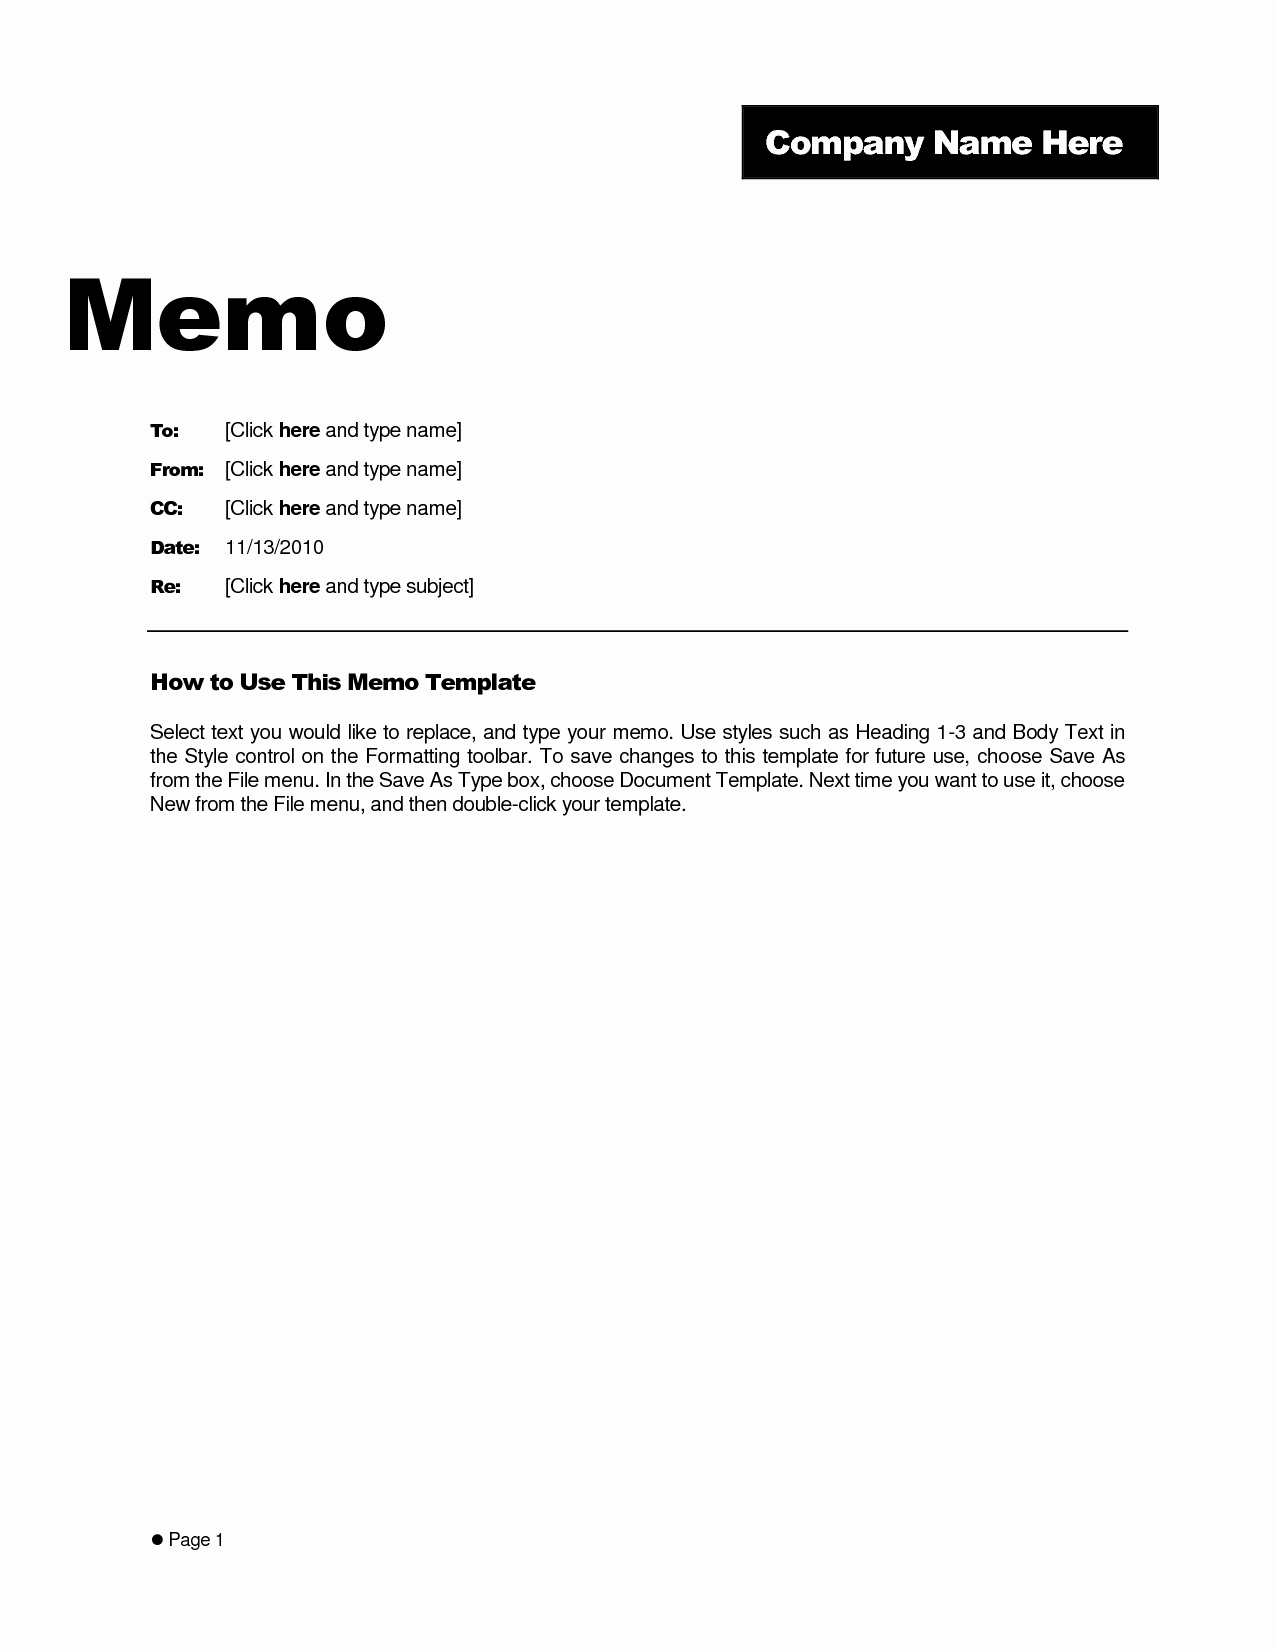 Ms Word Memo Templates Awesome Business Memo format Microsoft Word